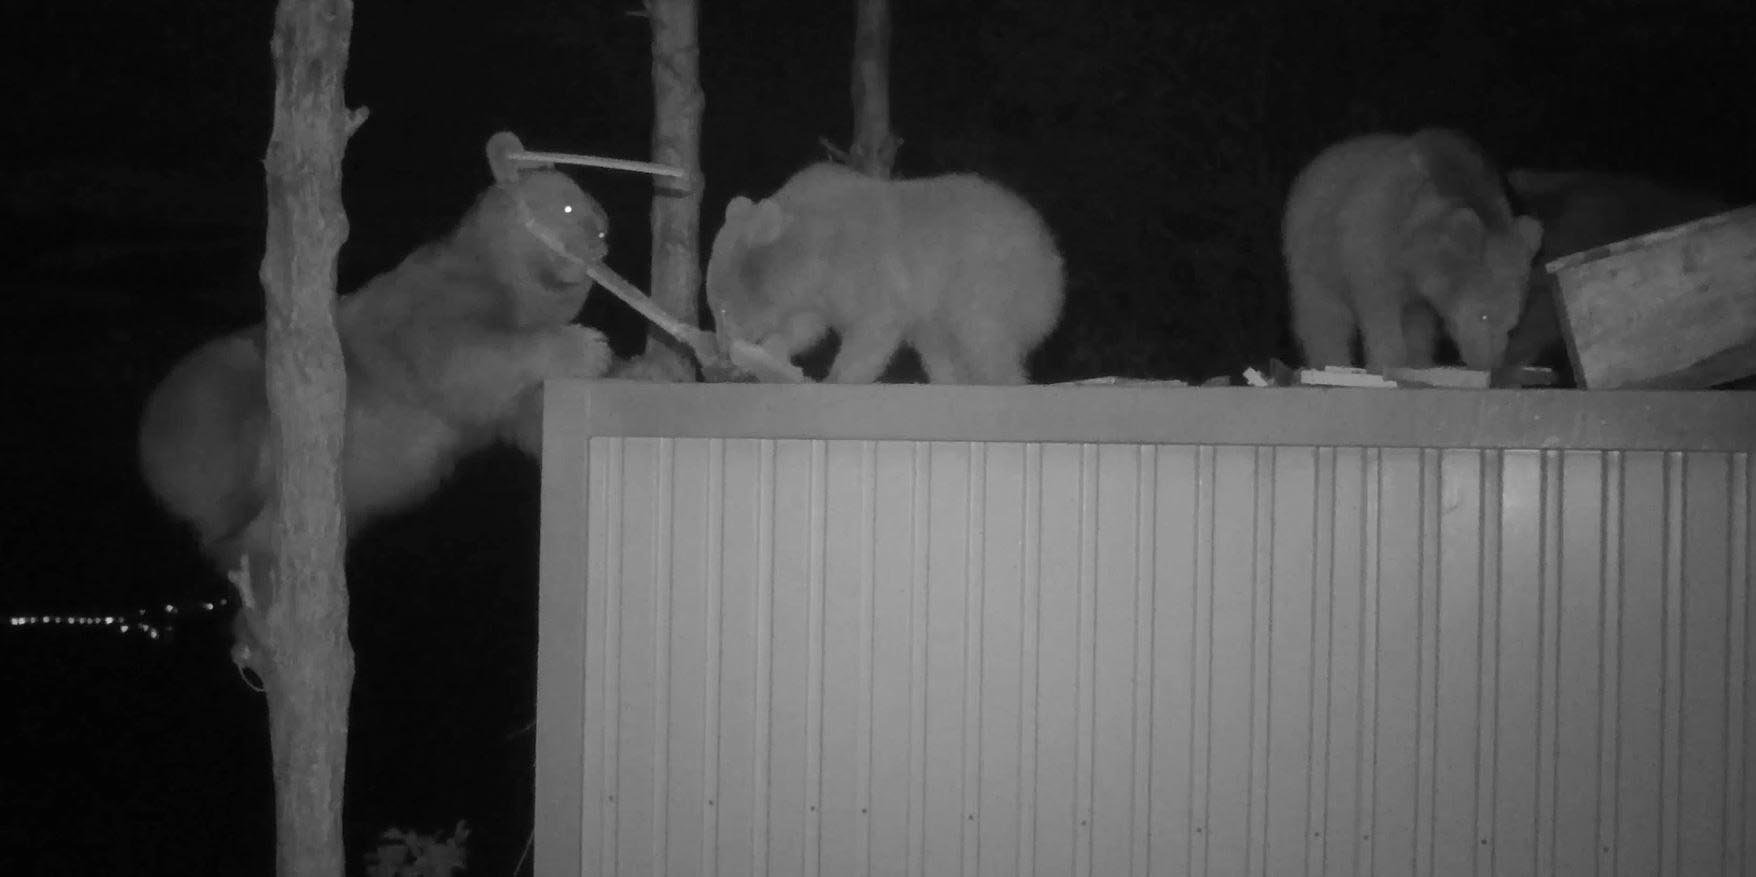 Bears caught on security cameras are seen eating hives in the Sürmene district of Trabzon province, Turkey, June 22, 2020. (DHA Photo)